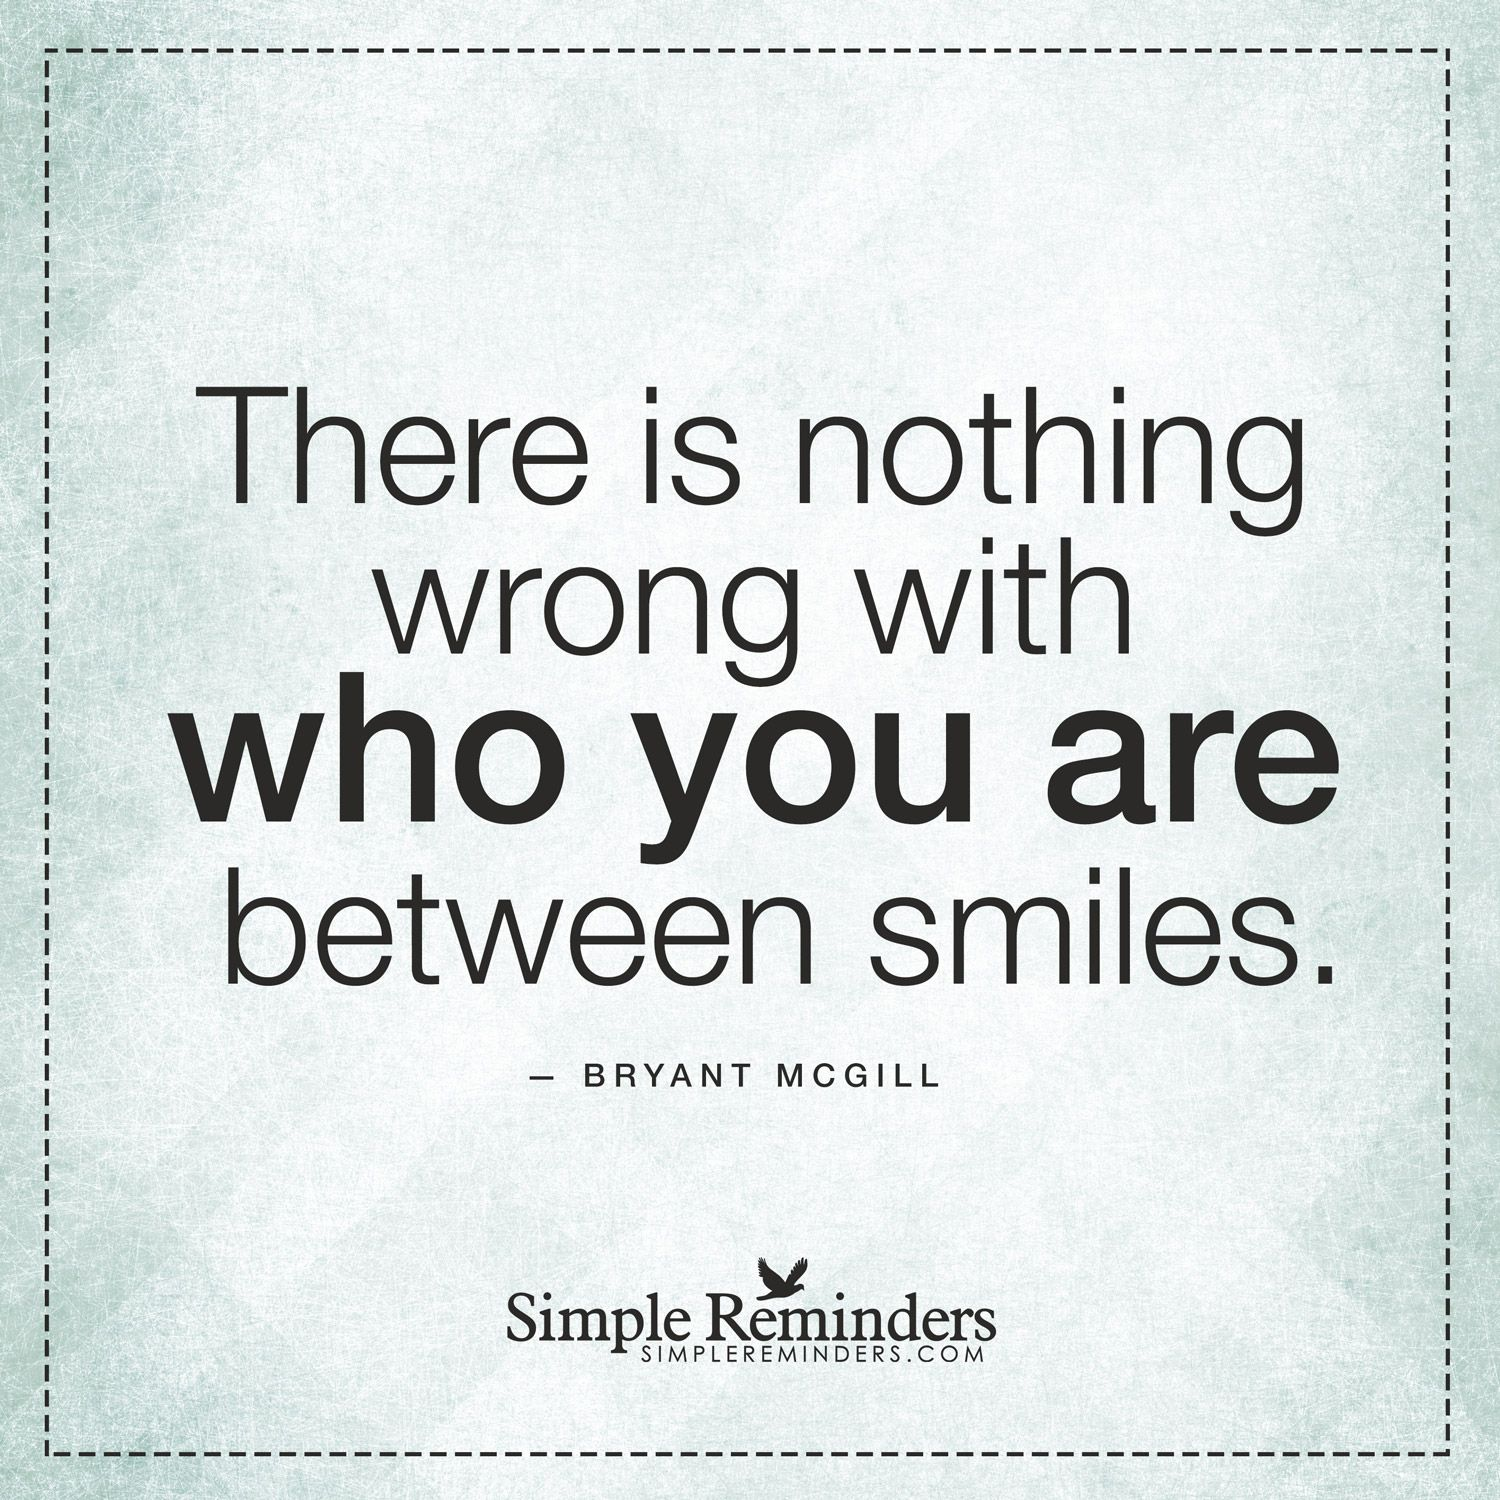 Quotes About Smiles You Do Not Have To Smile There Is Nothing Wrong With Who You Are